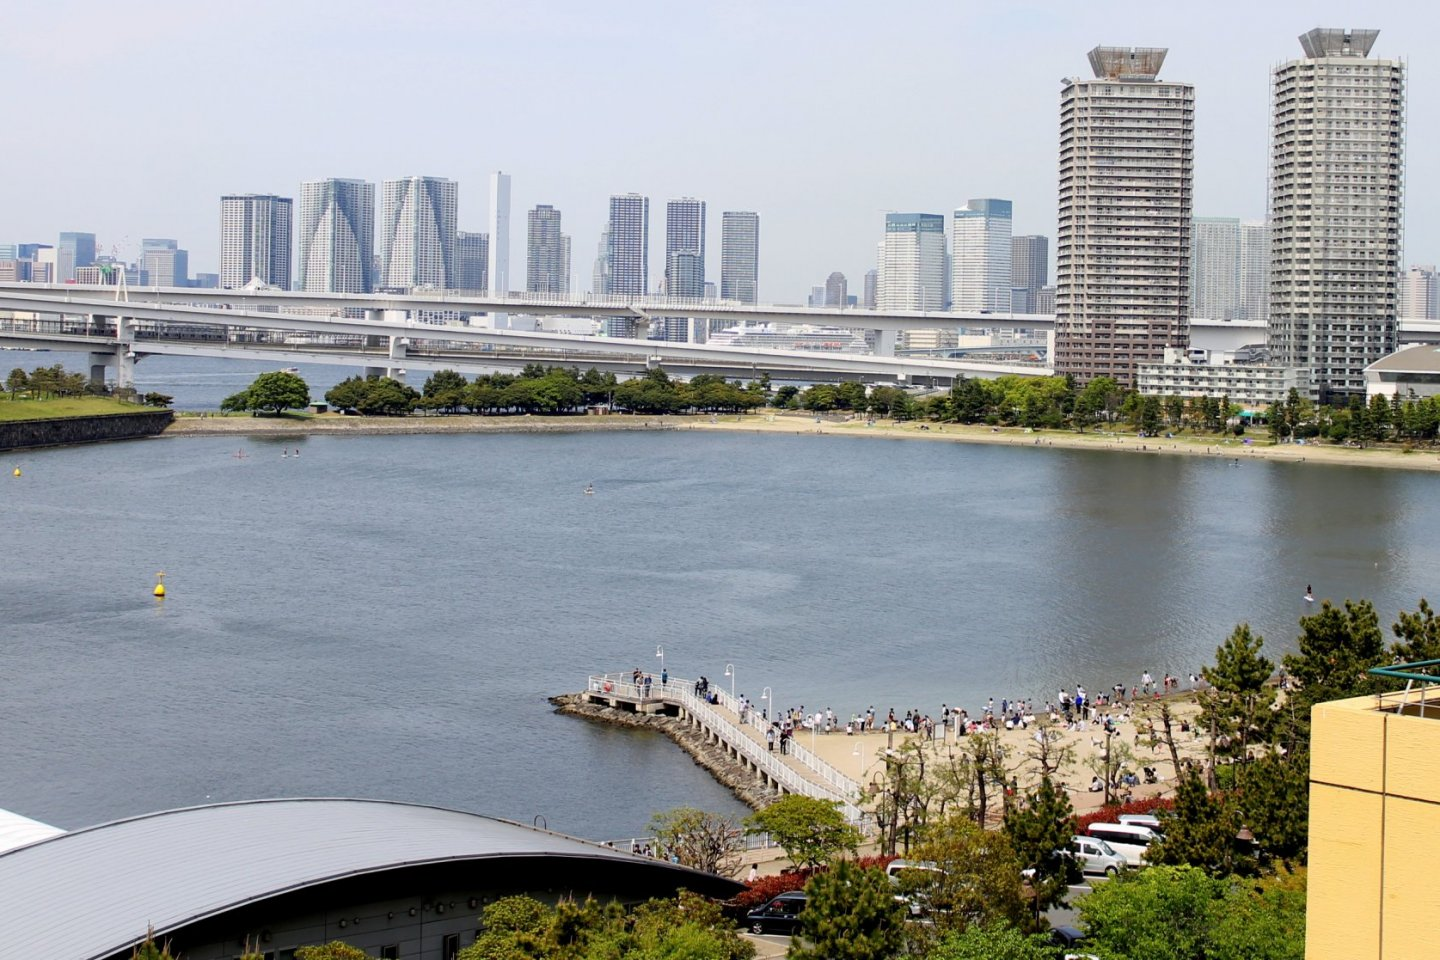 The picturesque view of the bay in Odaiba